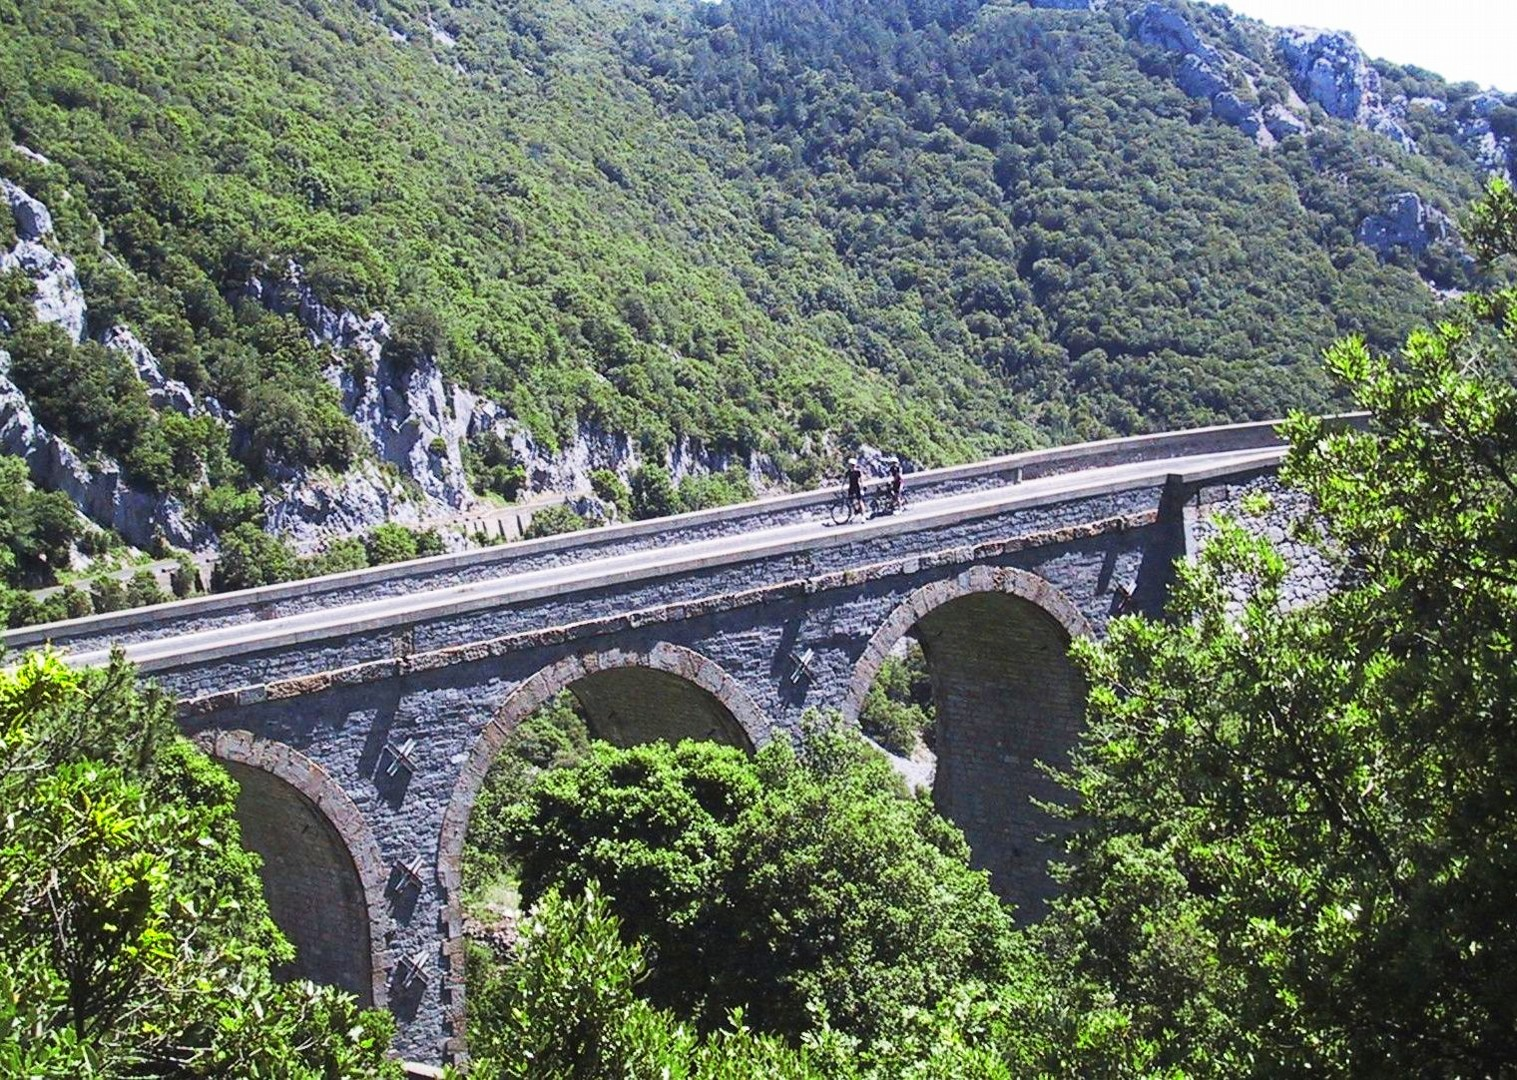 france-pyrenees-guided-road-cycling.jpg - France - Pyrenees Fitness Week (Grade 2-3) - Guided Road Cycling Holiday - Road Cycling